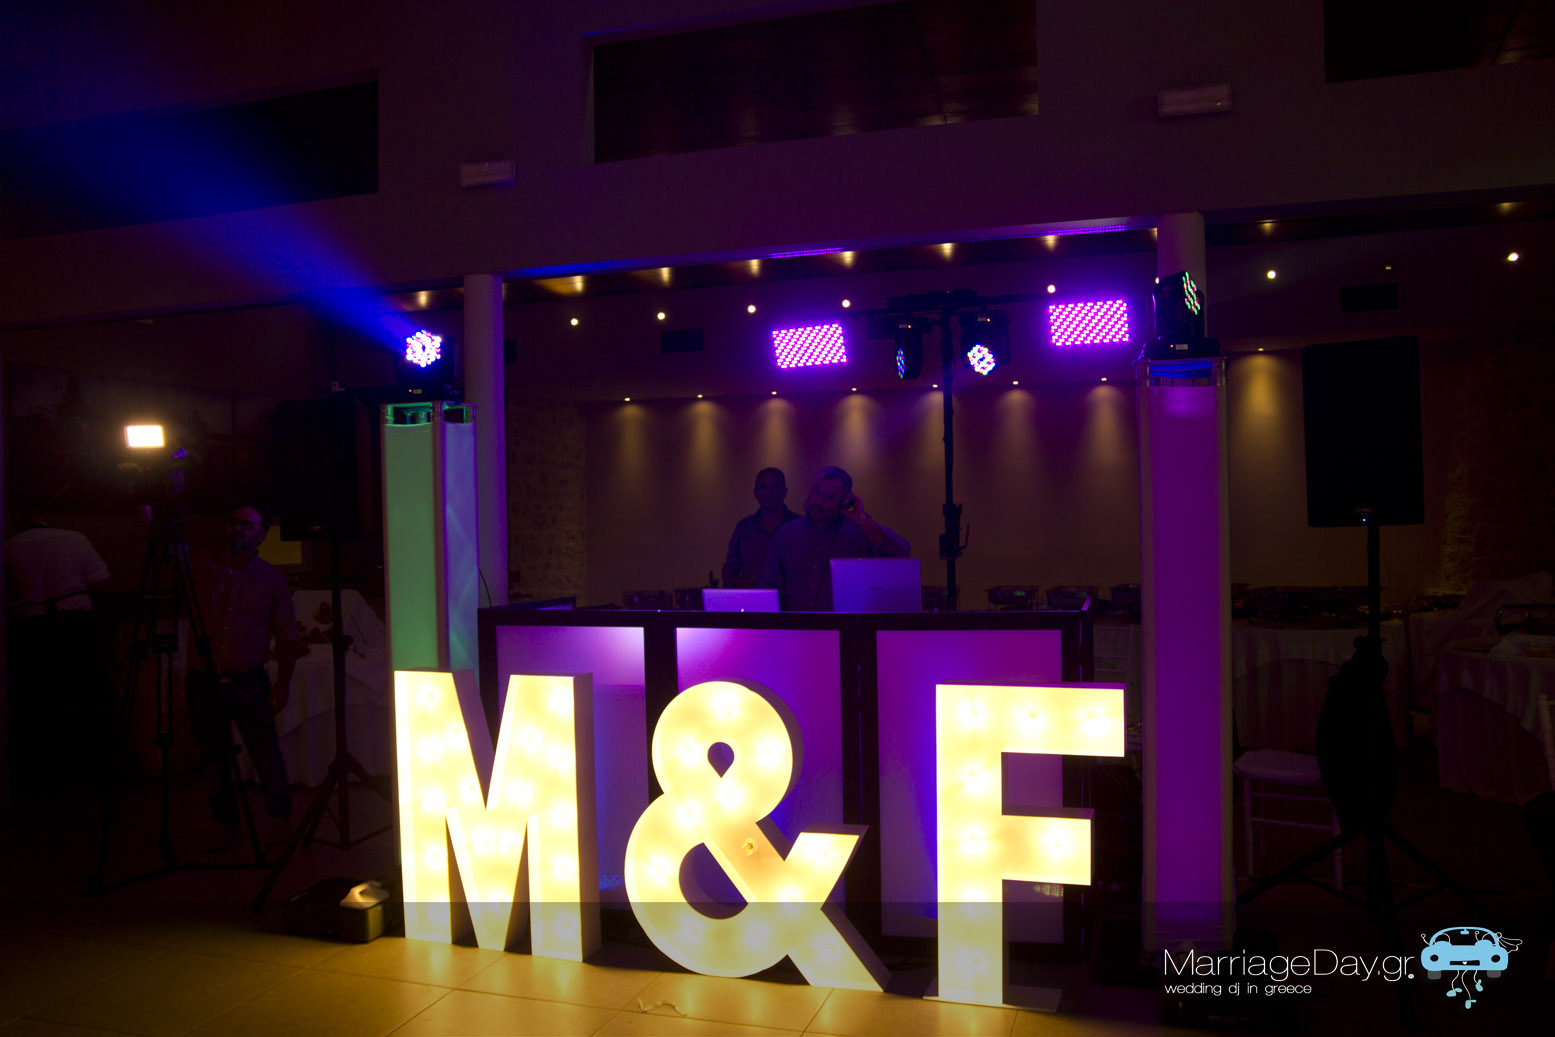 Marriageday set up | Dance floor lighting | lighted up letters for wedding